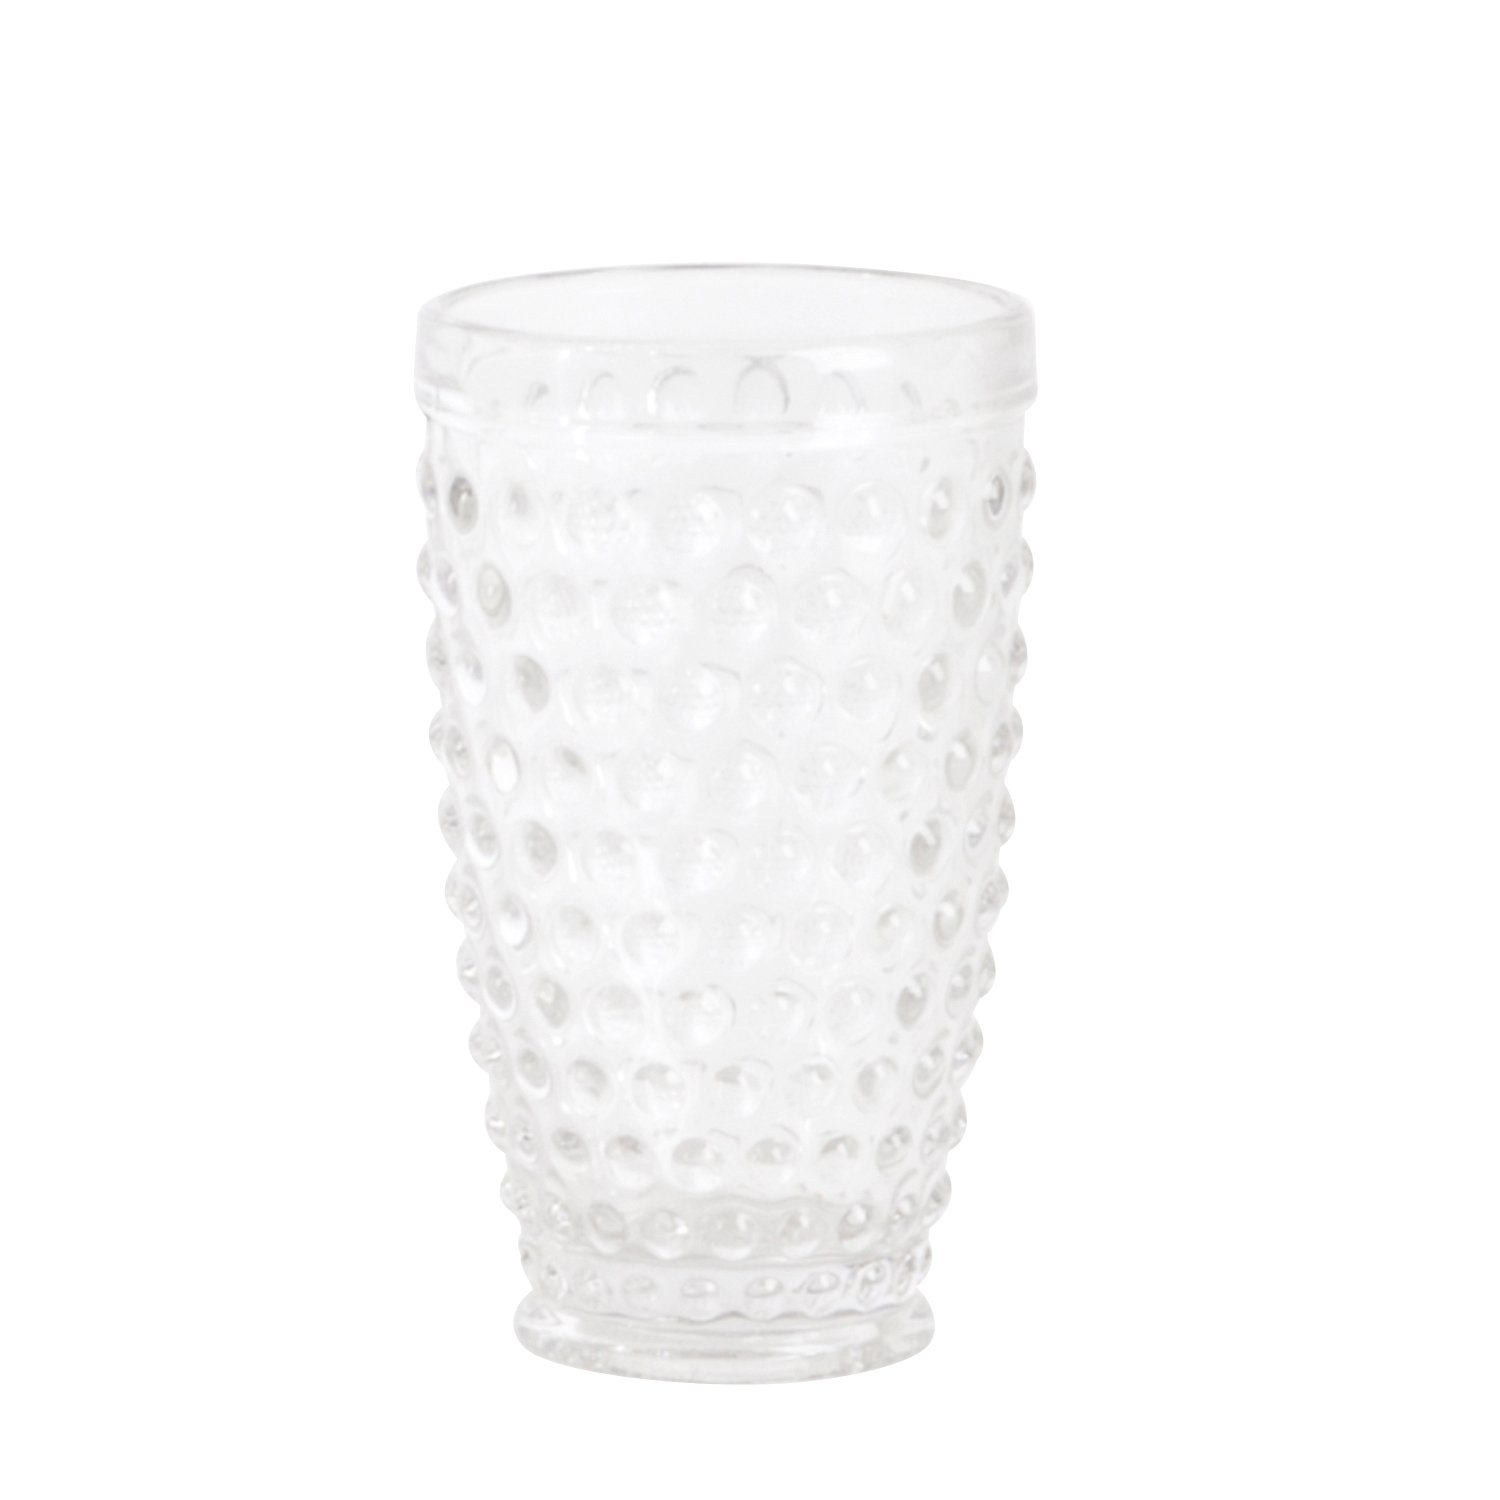 SARO LIFESTYLE SE006.C Hobnail Highball Glass, Clear, 13.53 oz (Set of 6 pcs)